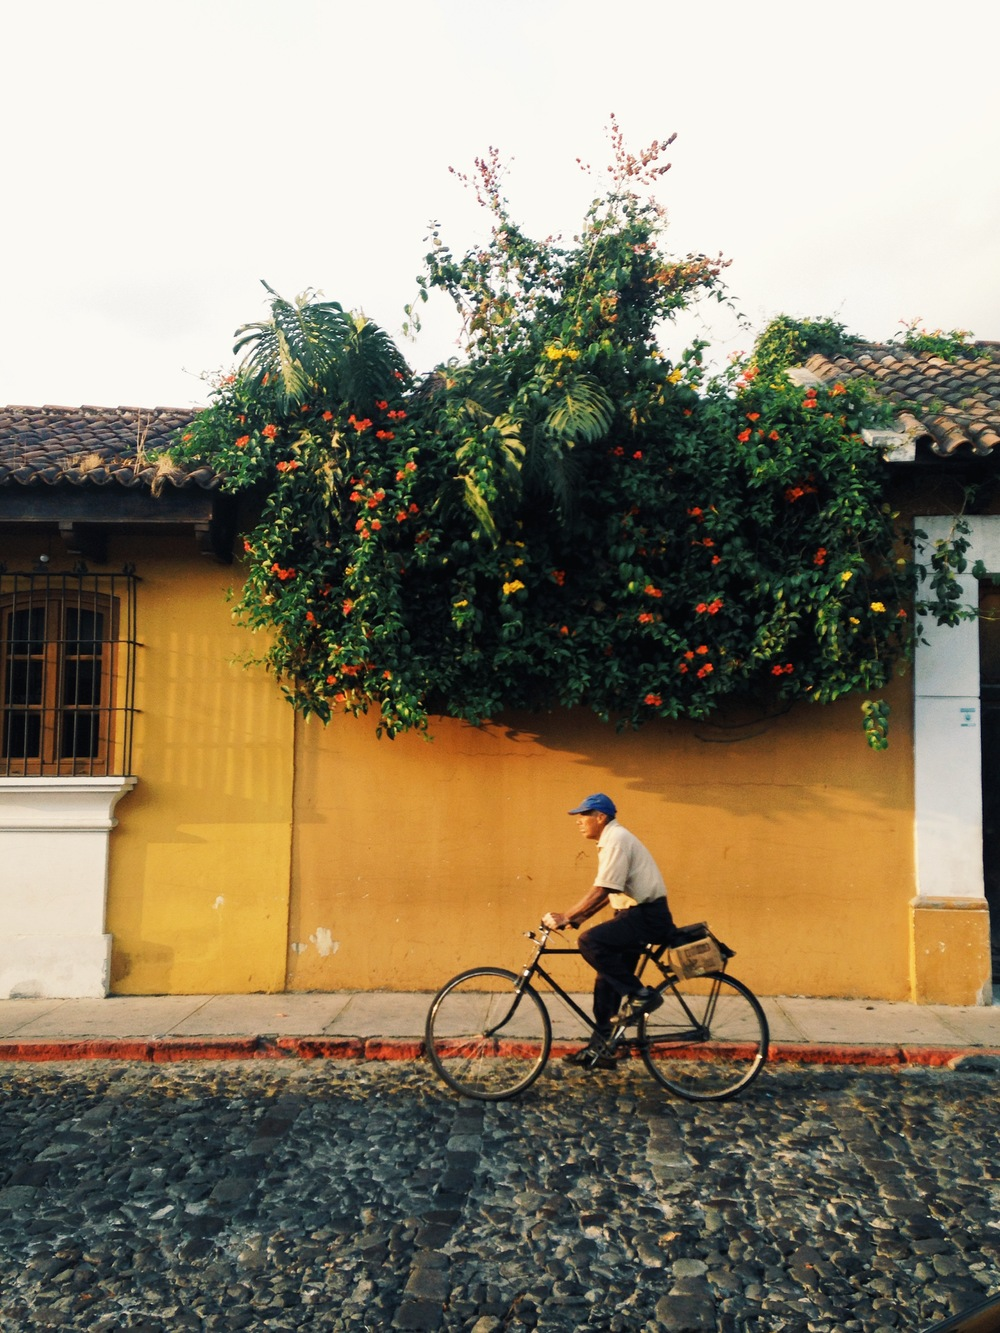 Captured in Antigua, Guatemala.